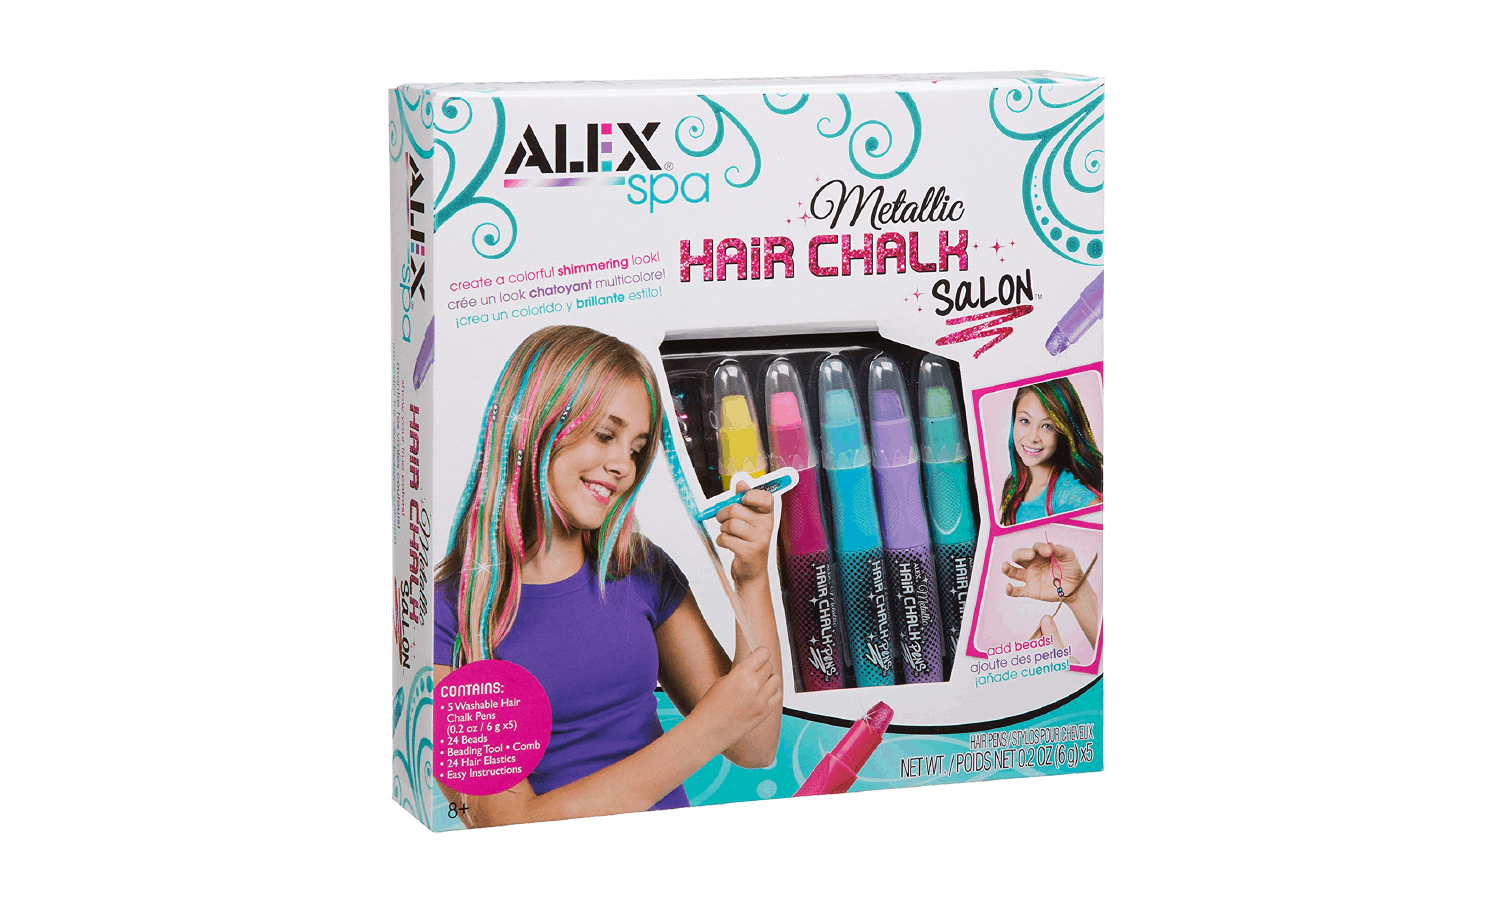 ALEXspa Metallic Hair Chalk Salon